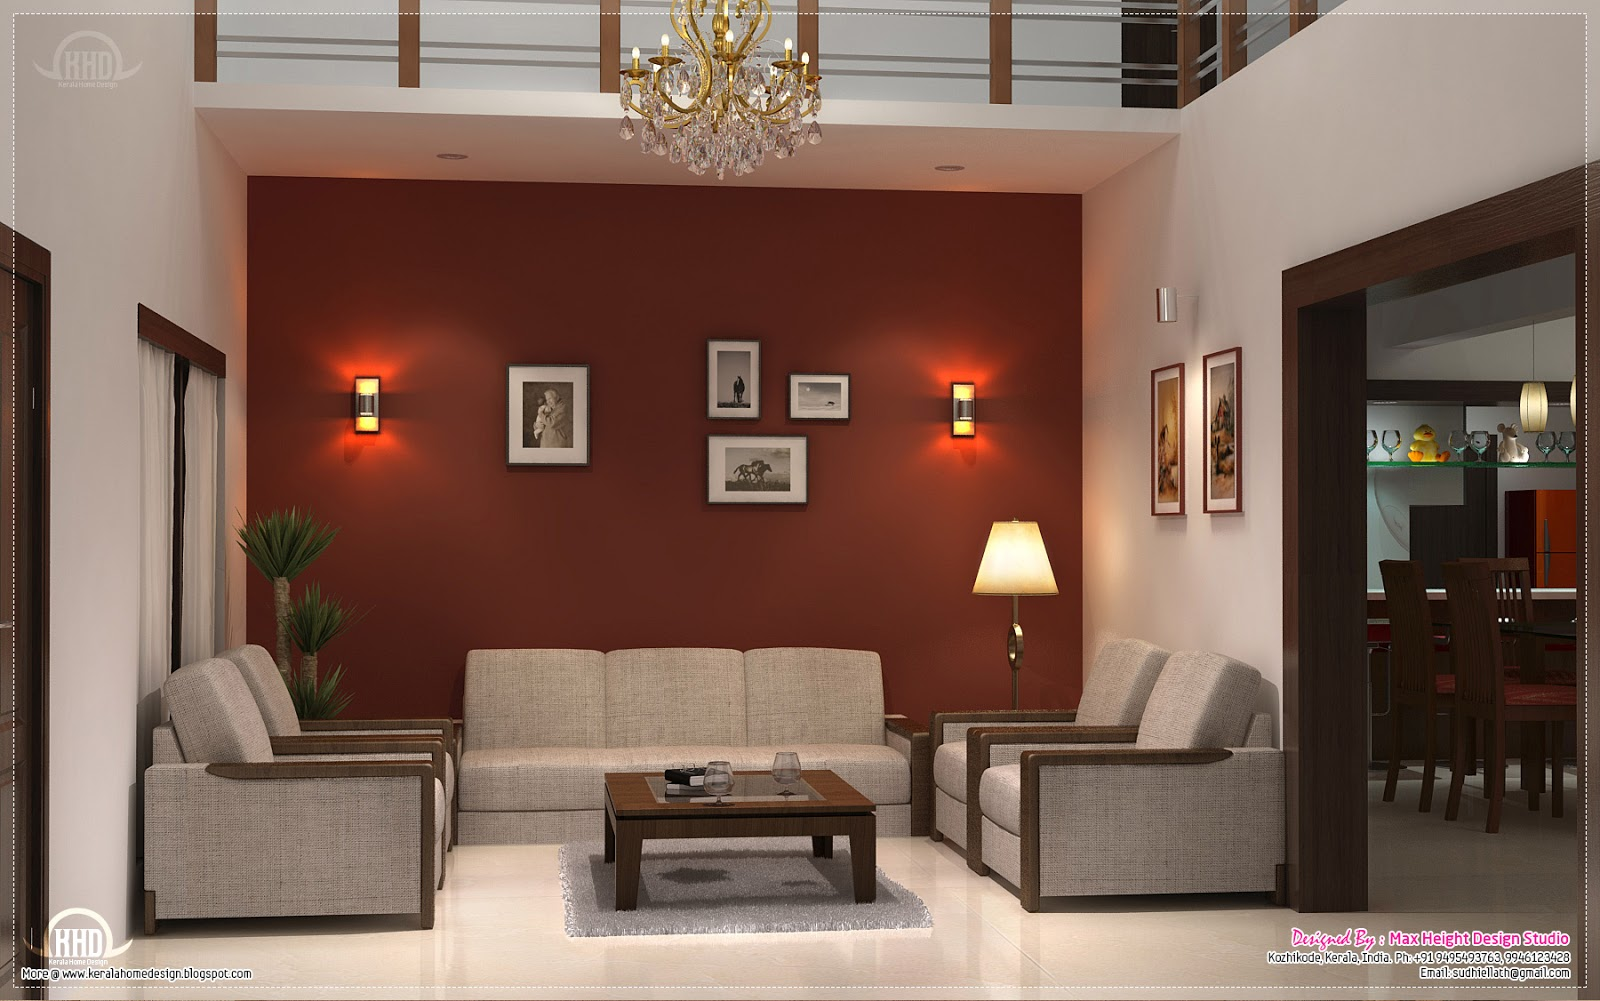 Home interior design ideas home kerala plans for 2 bhk interior decoration